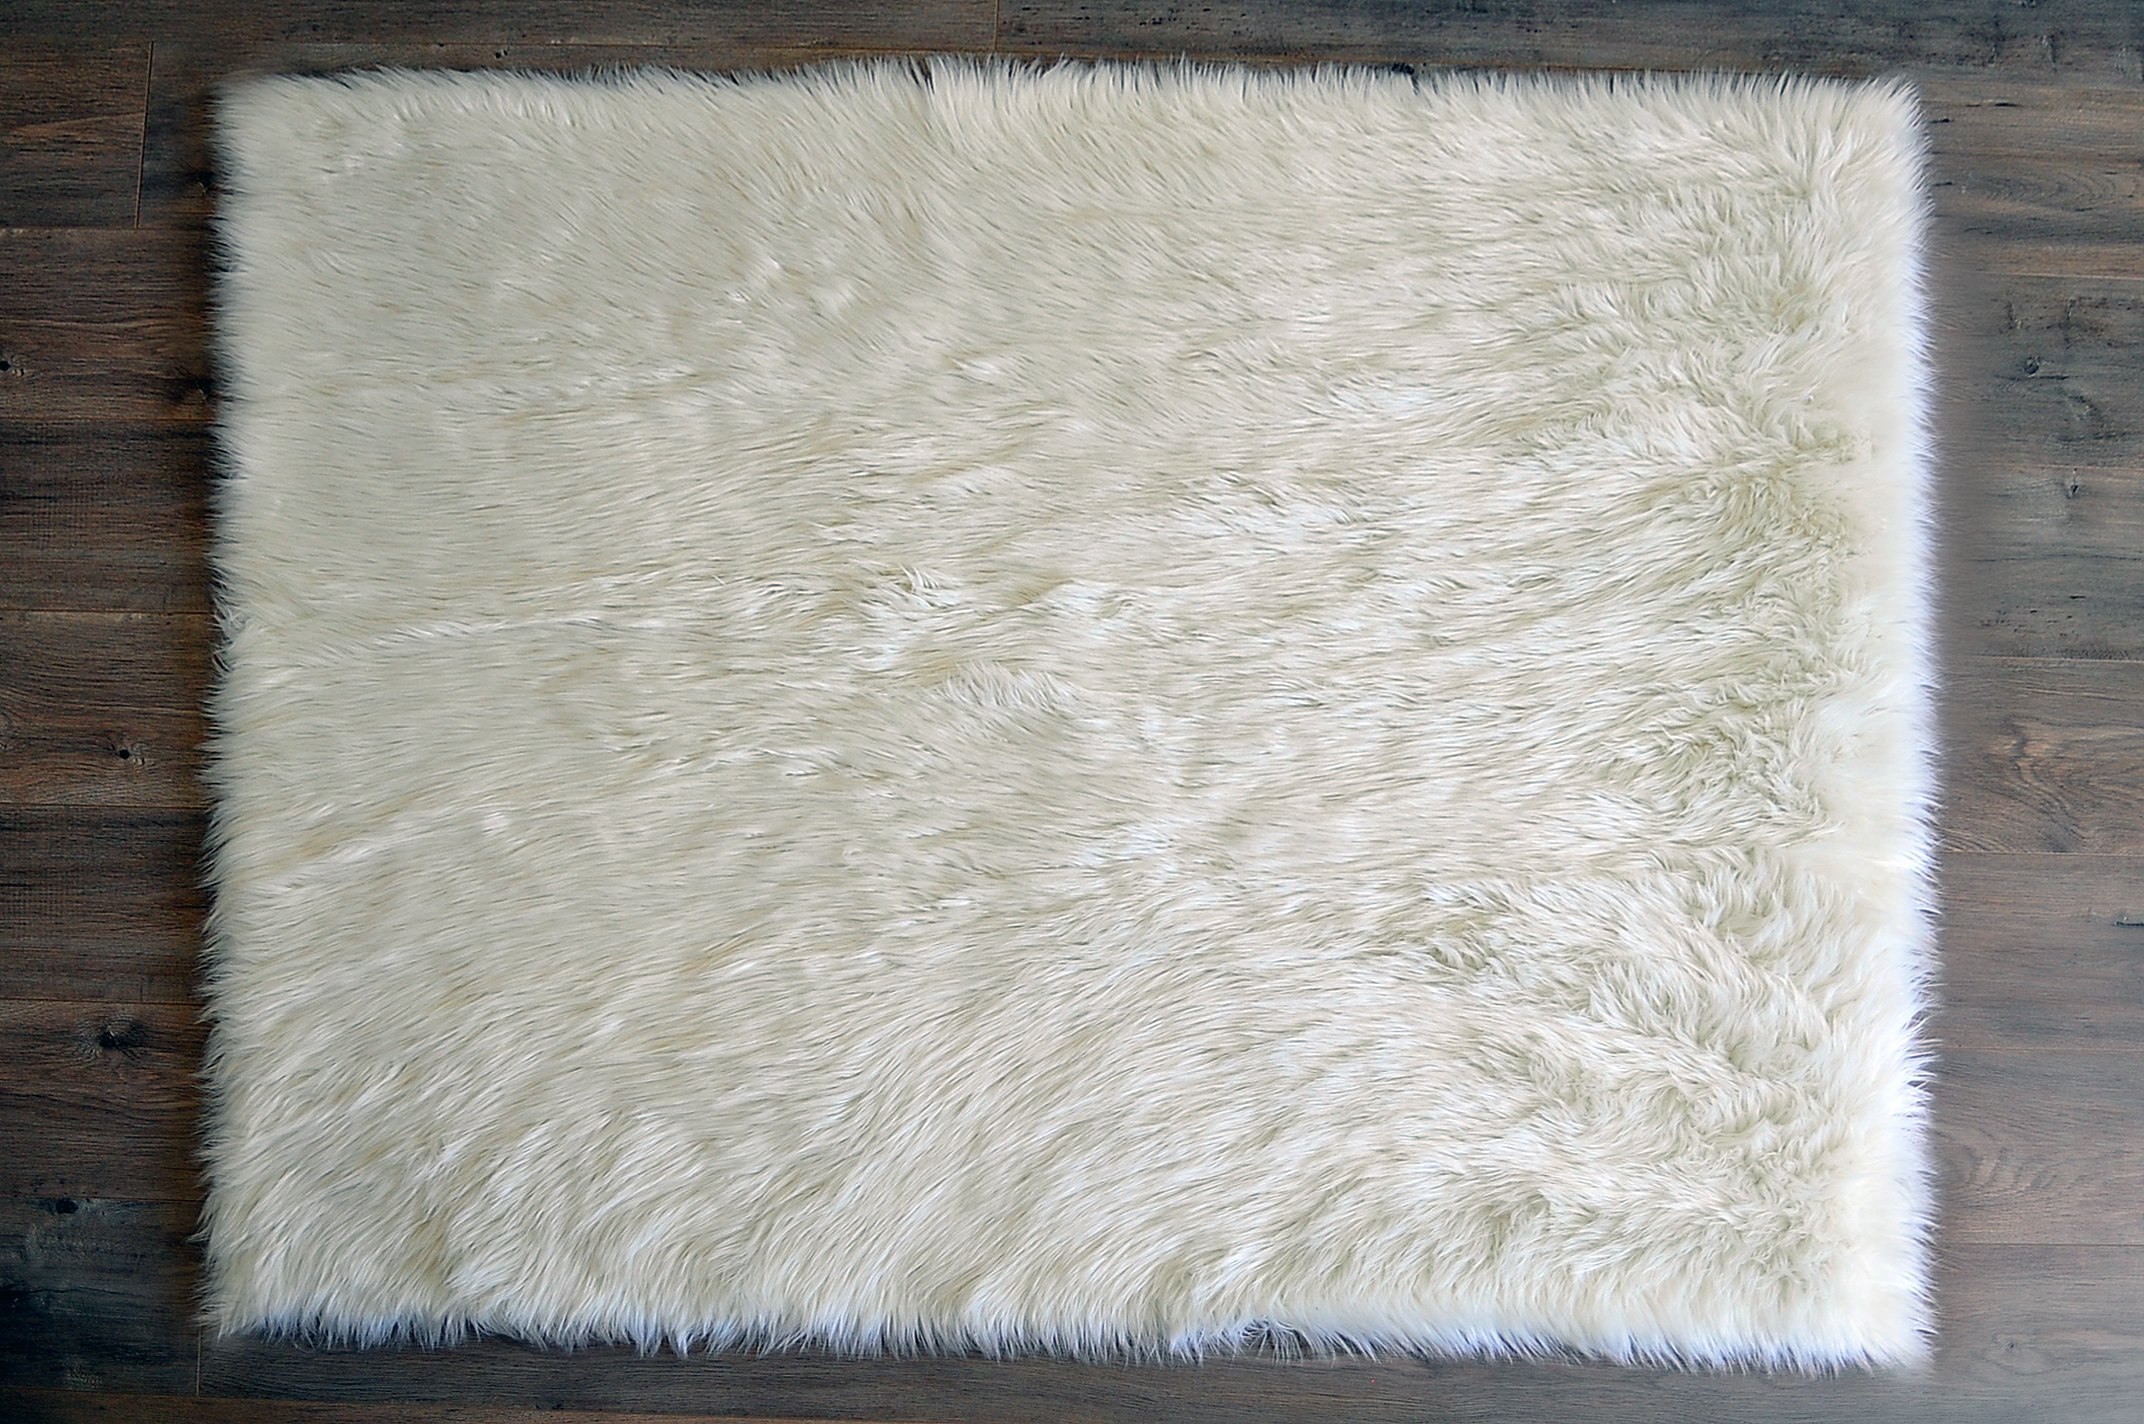 Machine Washable Faux Sheepskin White Rug 4' x 6' - Soft and silky - Perfect for baby's room, nursery, playroom (4' x 6' ft)